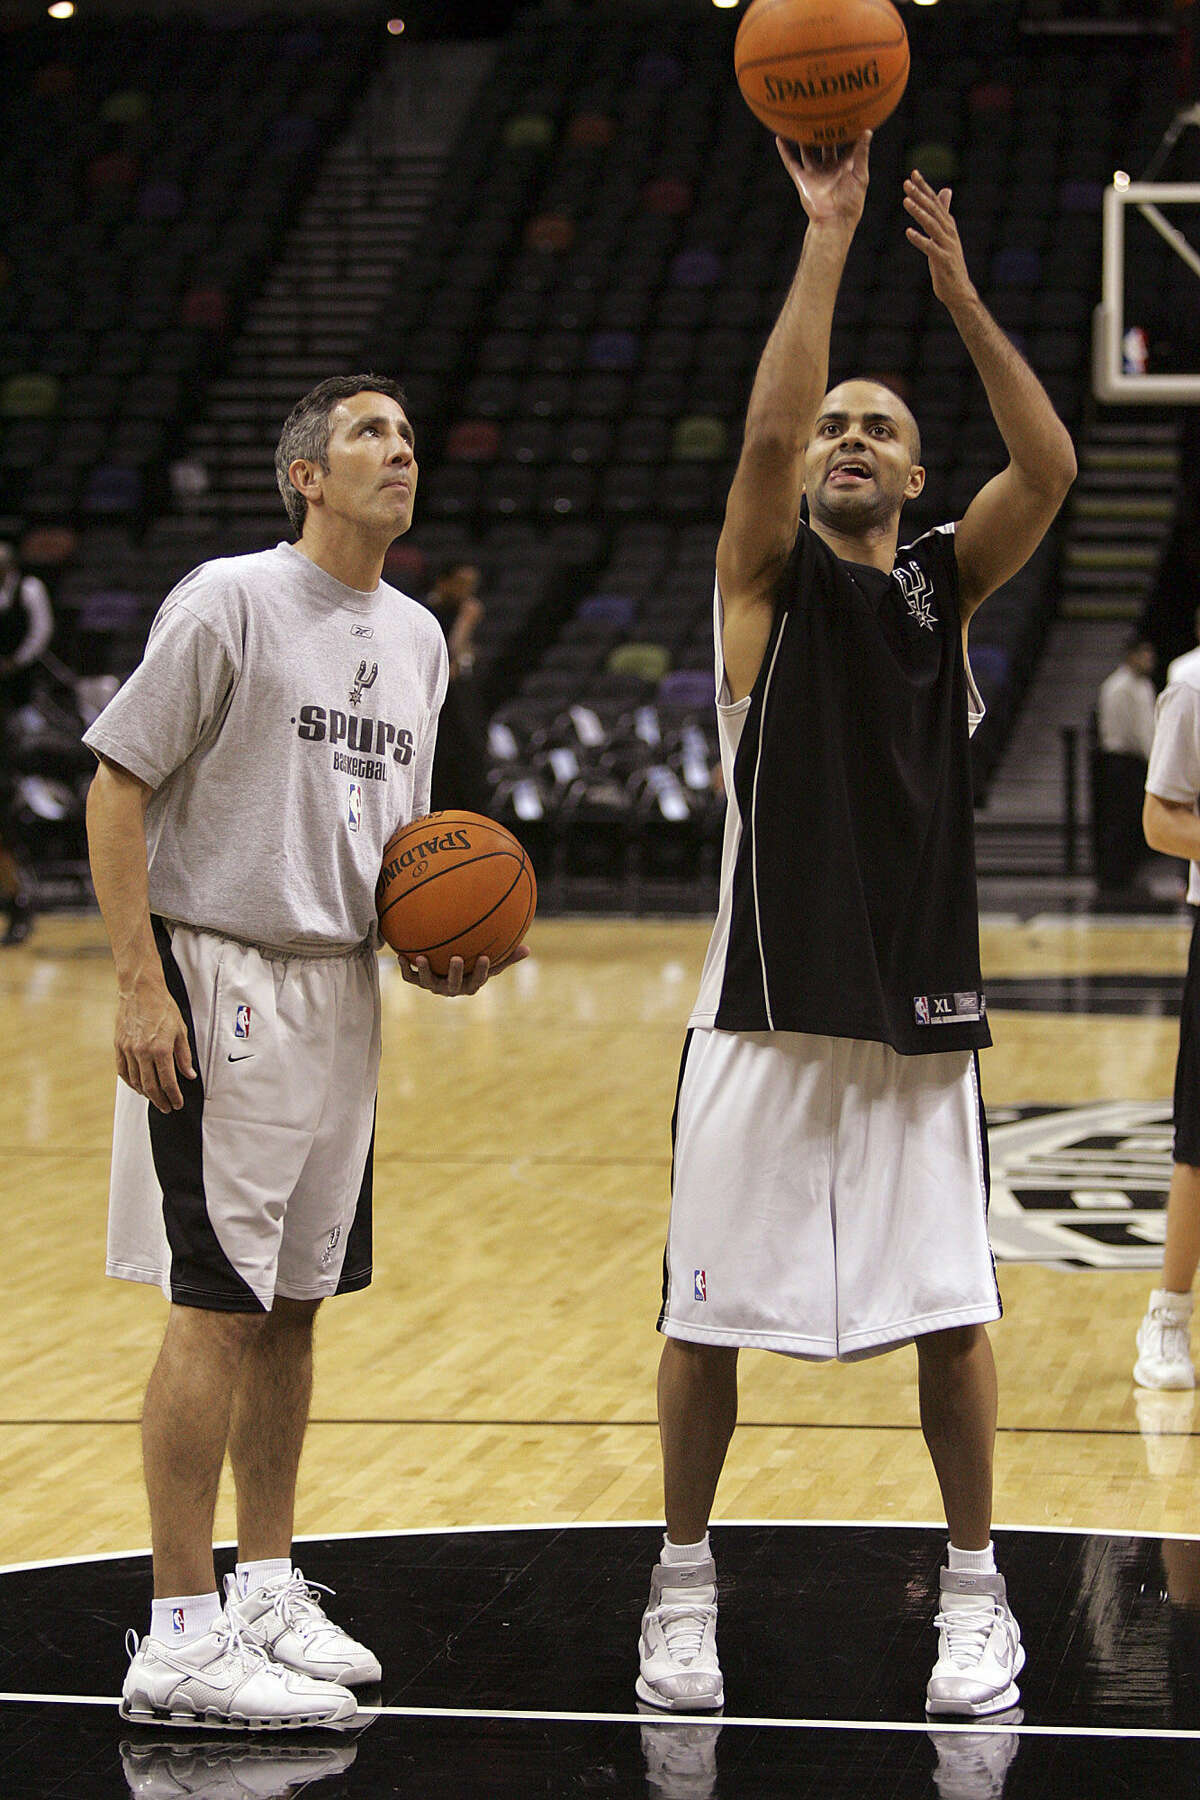 Shooting coach Chip Engelland has worked with Tony Parker since joining the Spurs in 2005, helping the All-Star guard improve his jumper without sacrificing his tear-drop.